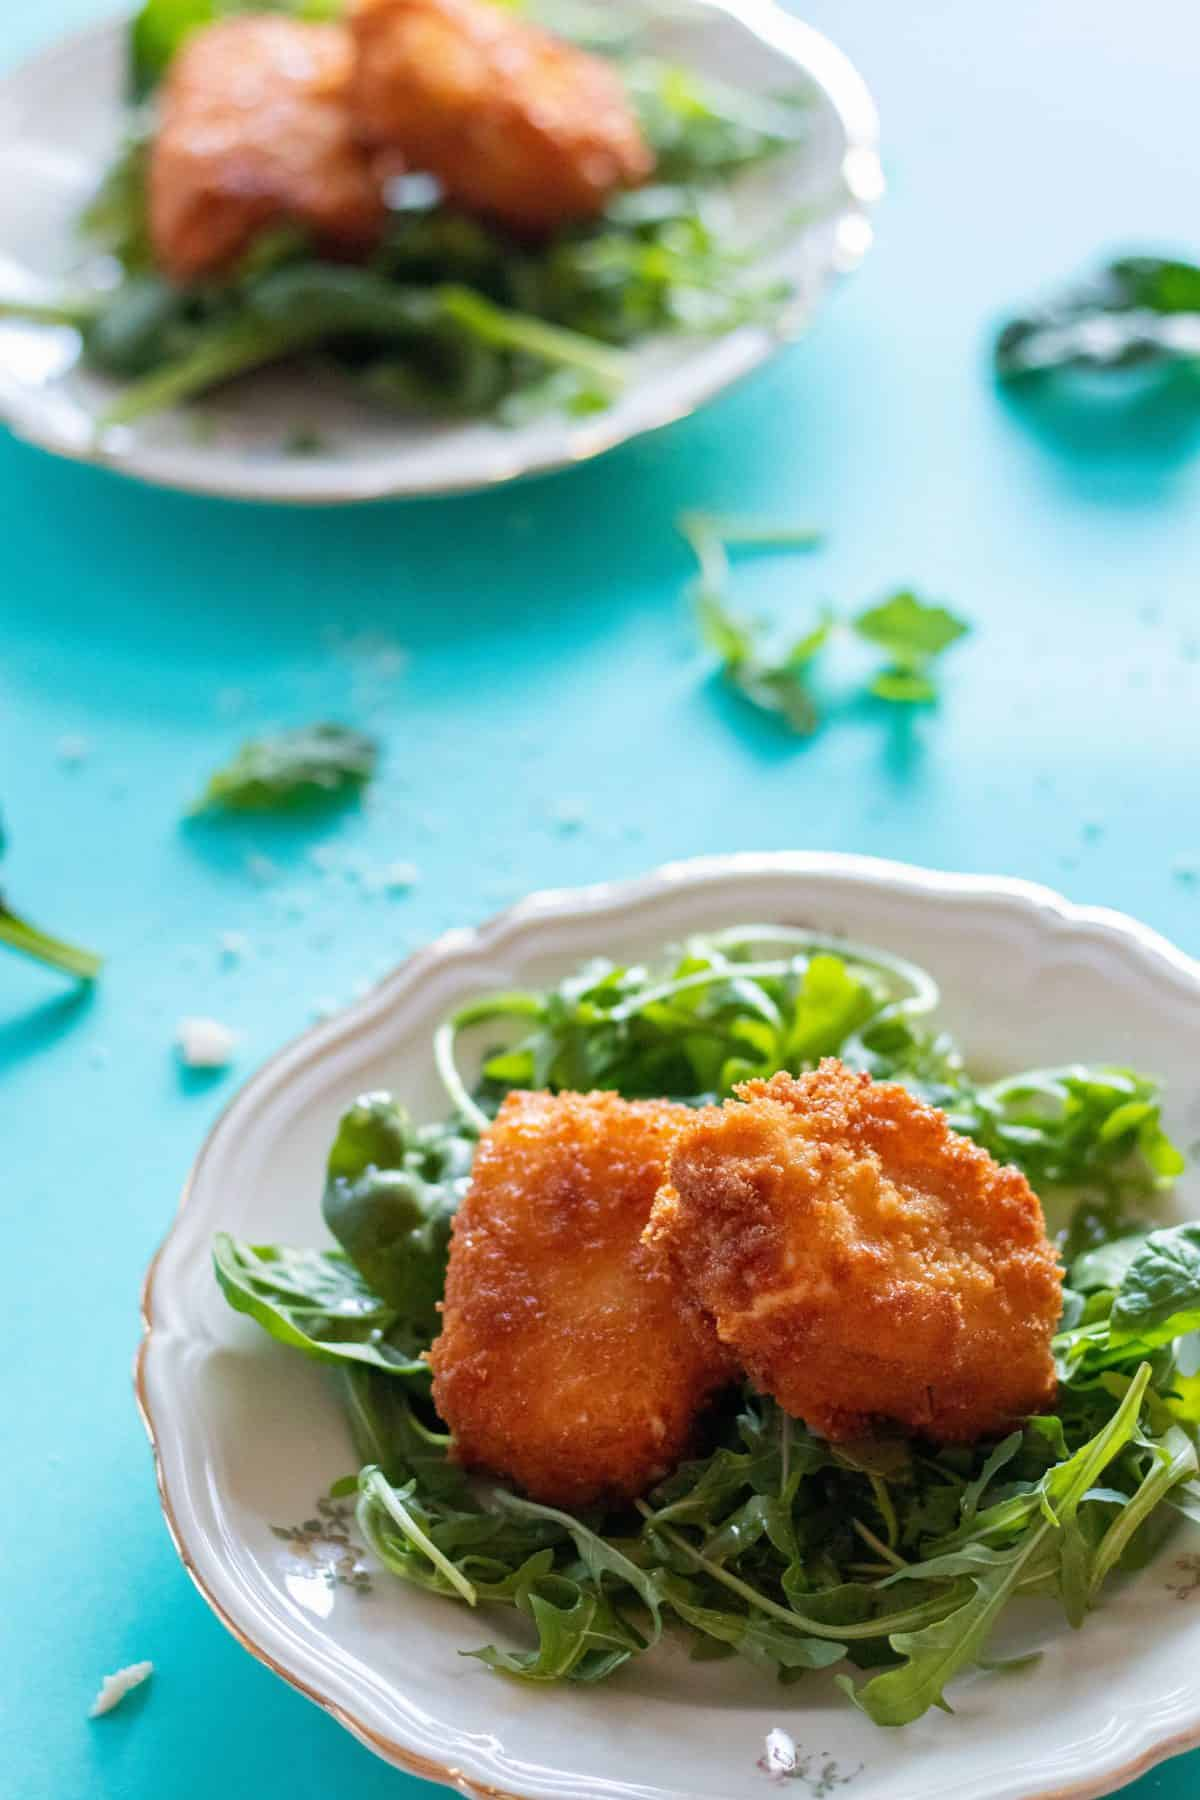 panko breaded feta cheese on a bed of greens